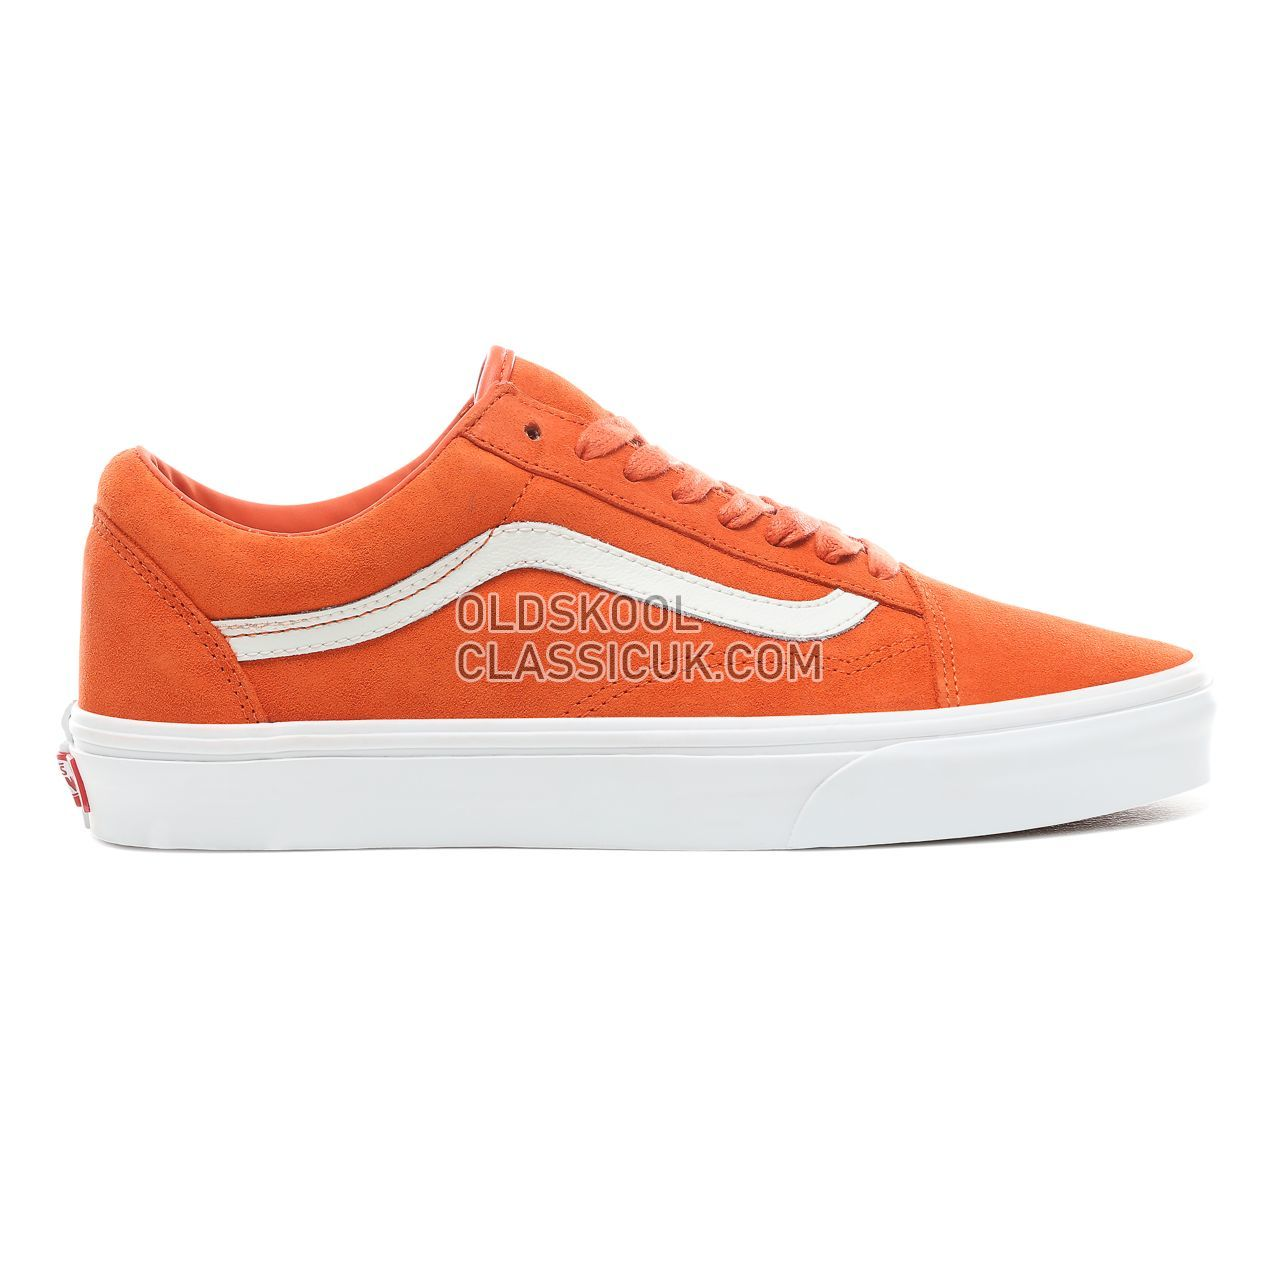 Vans Soft Suede Old Skool Sneakers Mens Womens Unisex (Soft Suede) Koi/True White VN0A38G1VKF Shoes